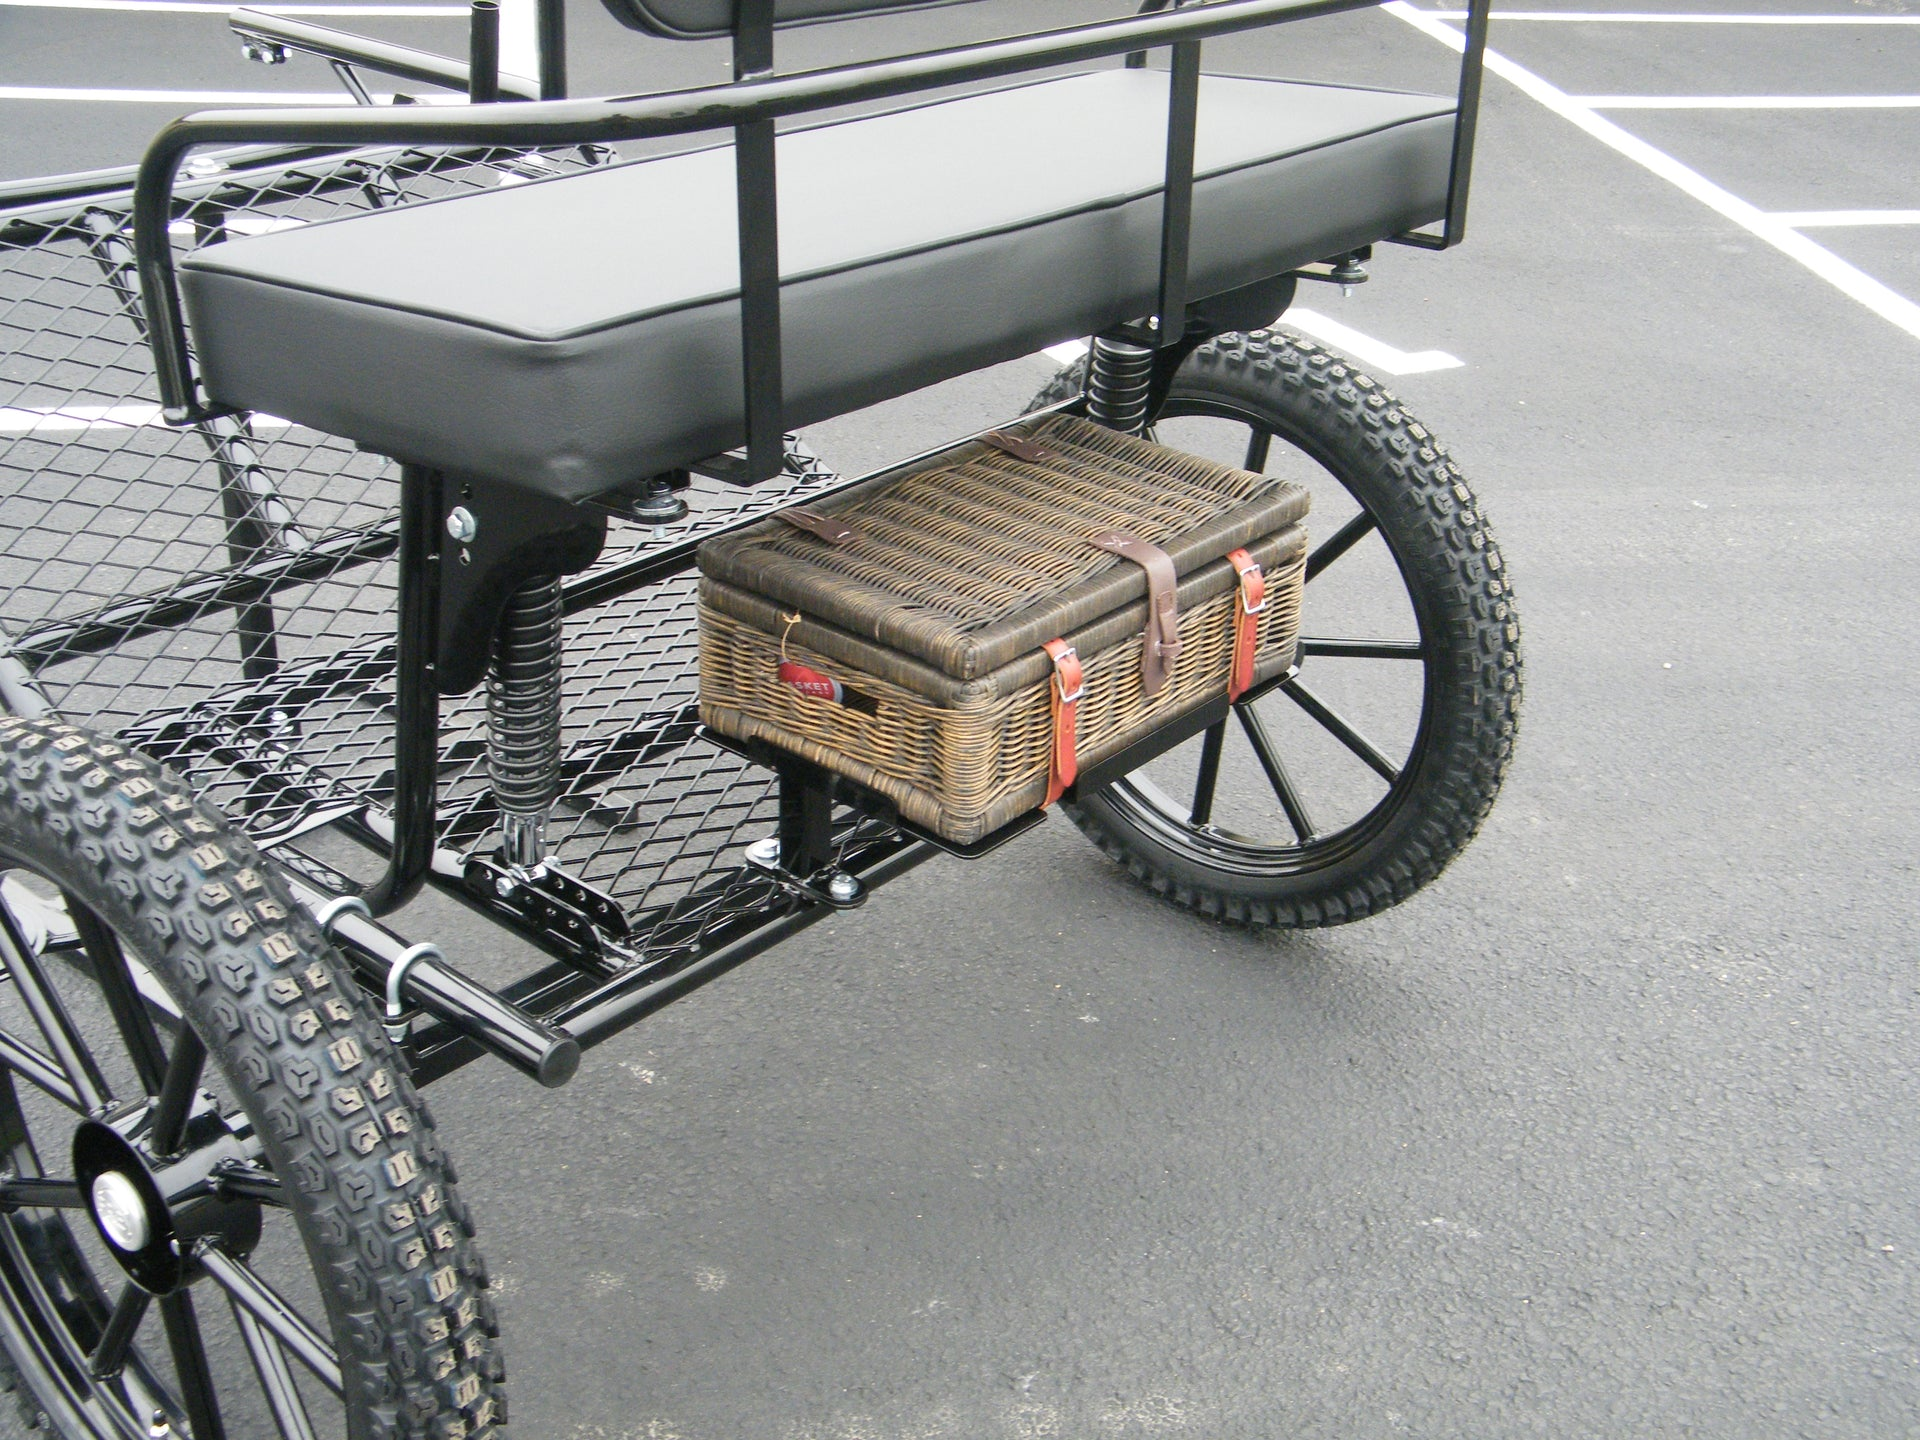 Rebel Option J - Wicker Spares Basket and Mounting Frame